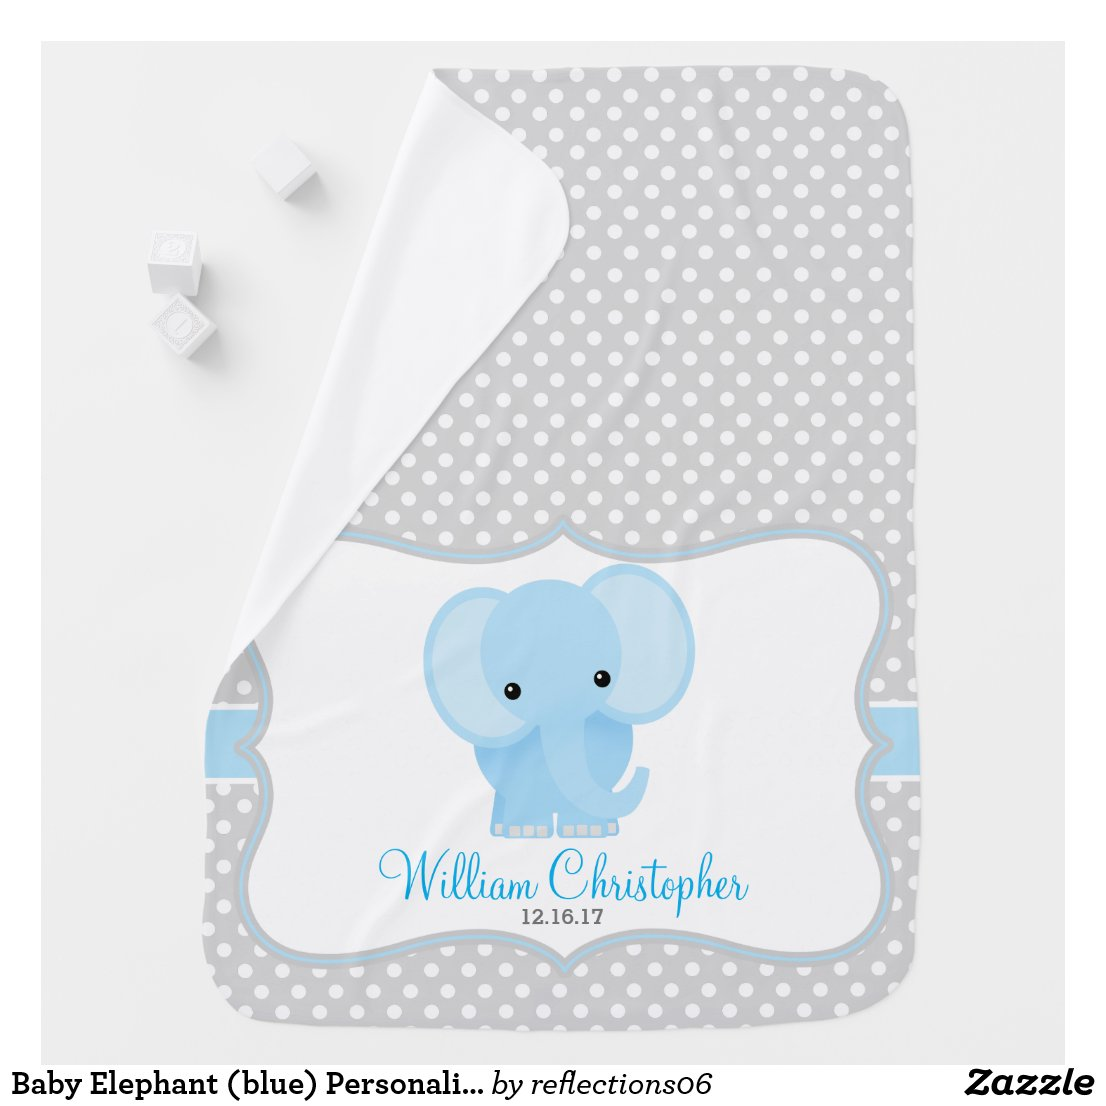 Baby Elephant (blue) Personalized Stroller Blanket